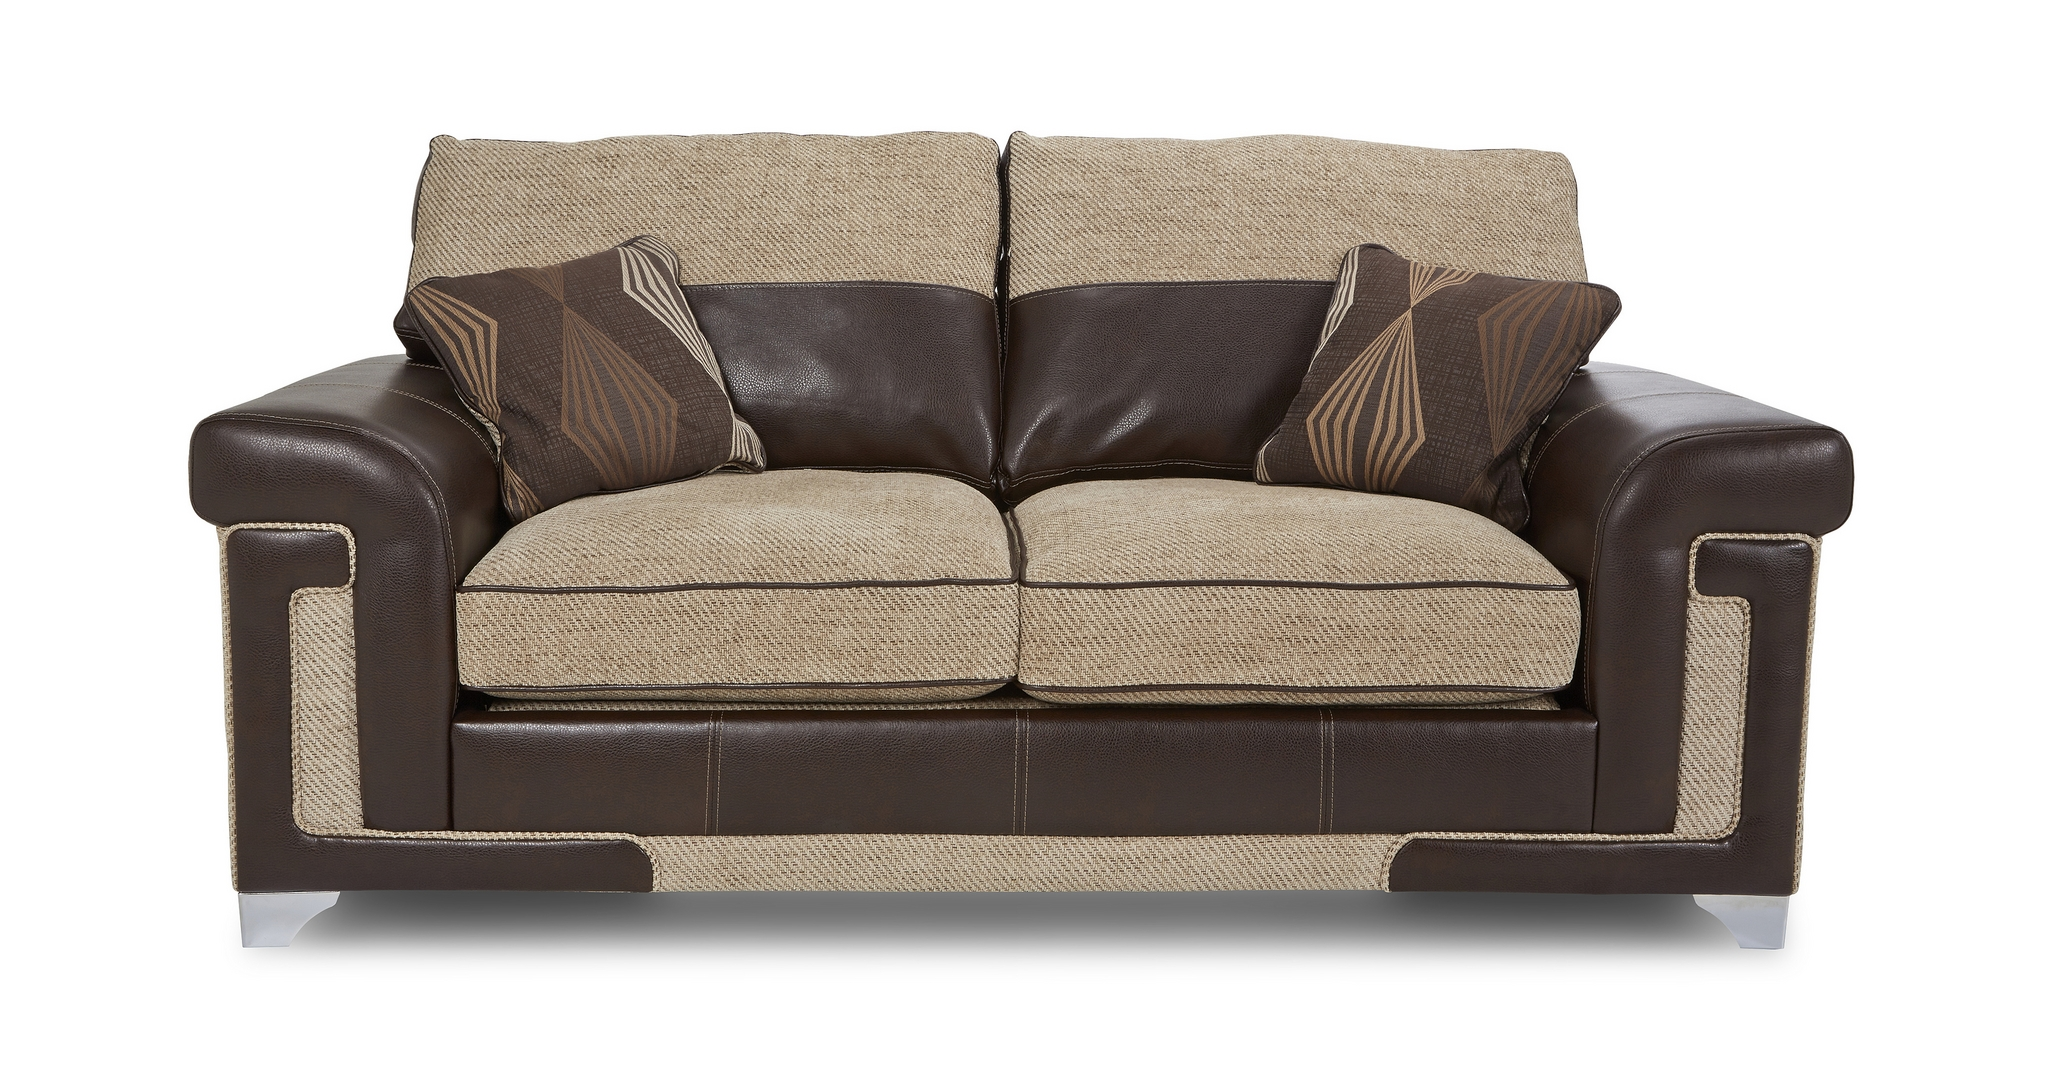 Dfs Taboo Oatmeal Formal Back Settee 2 Seater Deluxe